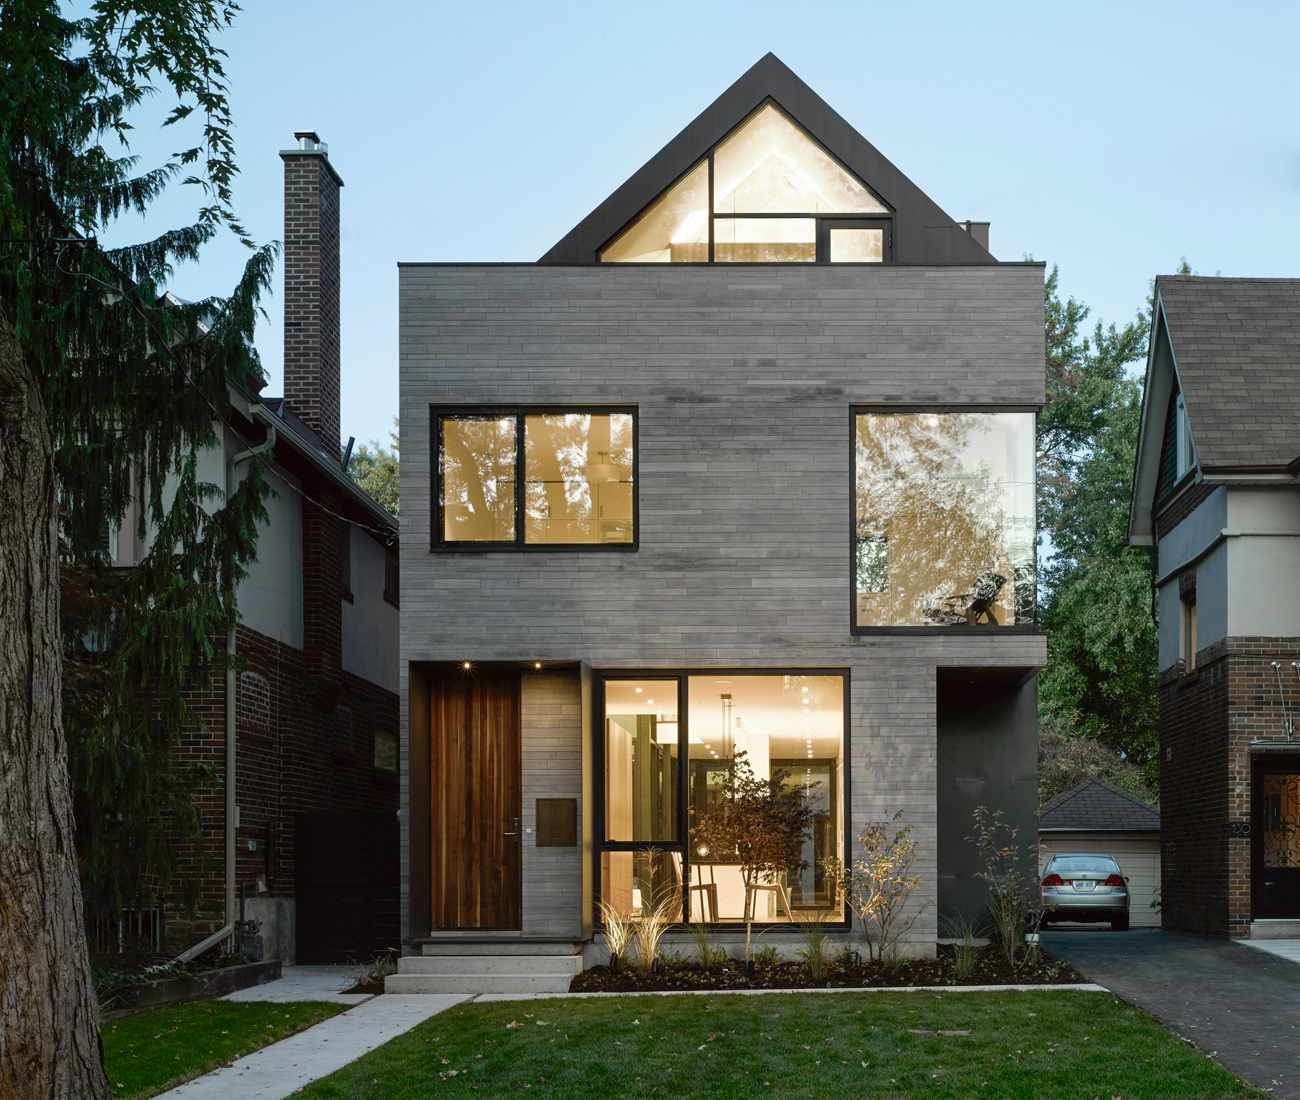 A modern home with a curiously pitched roof